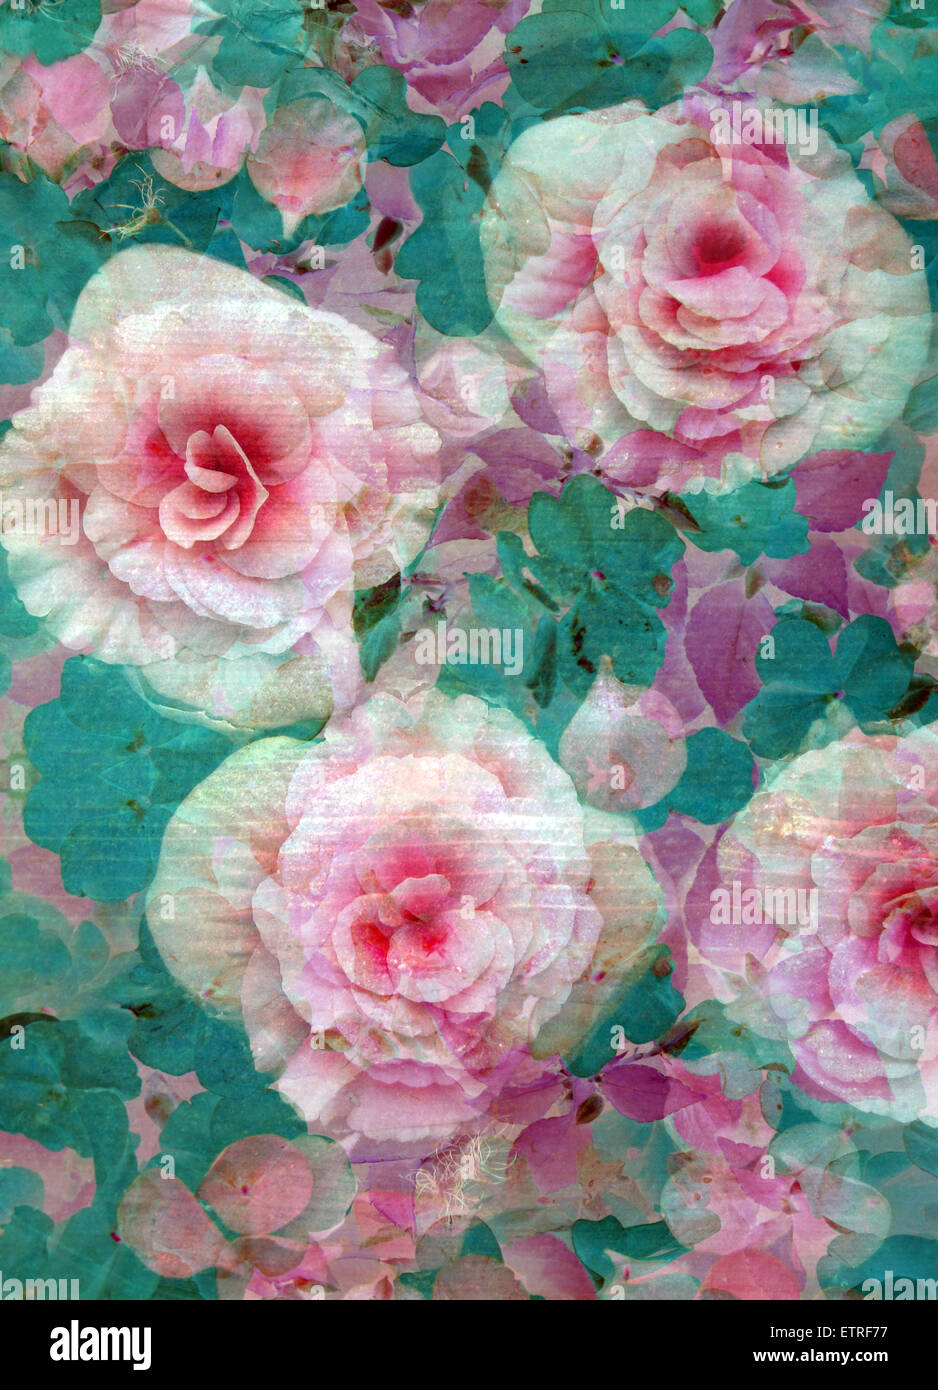 A Floral Montage Stock Photo